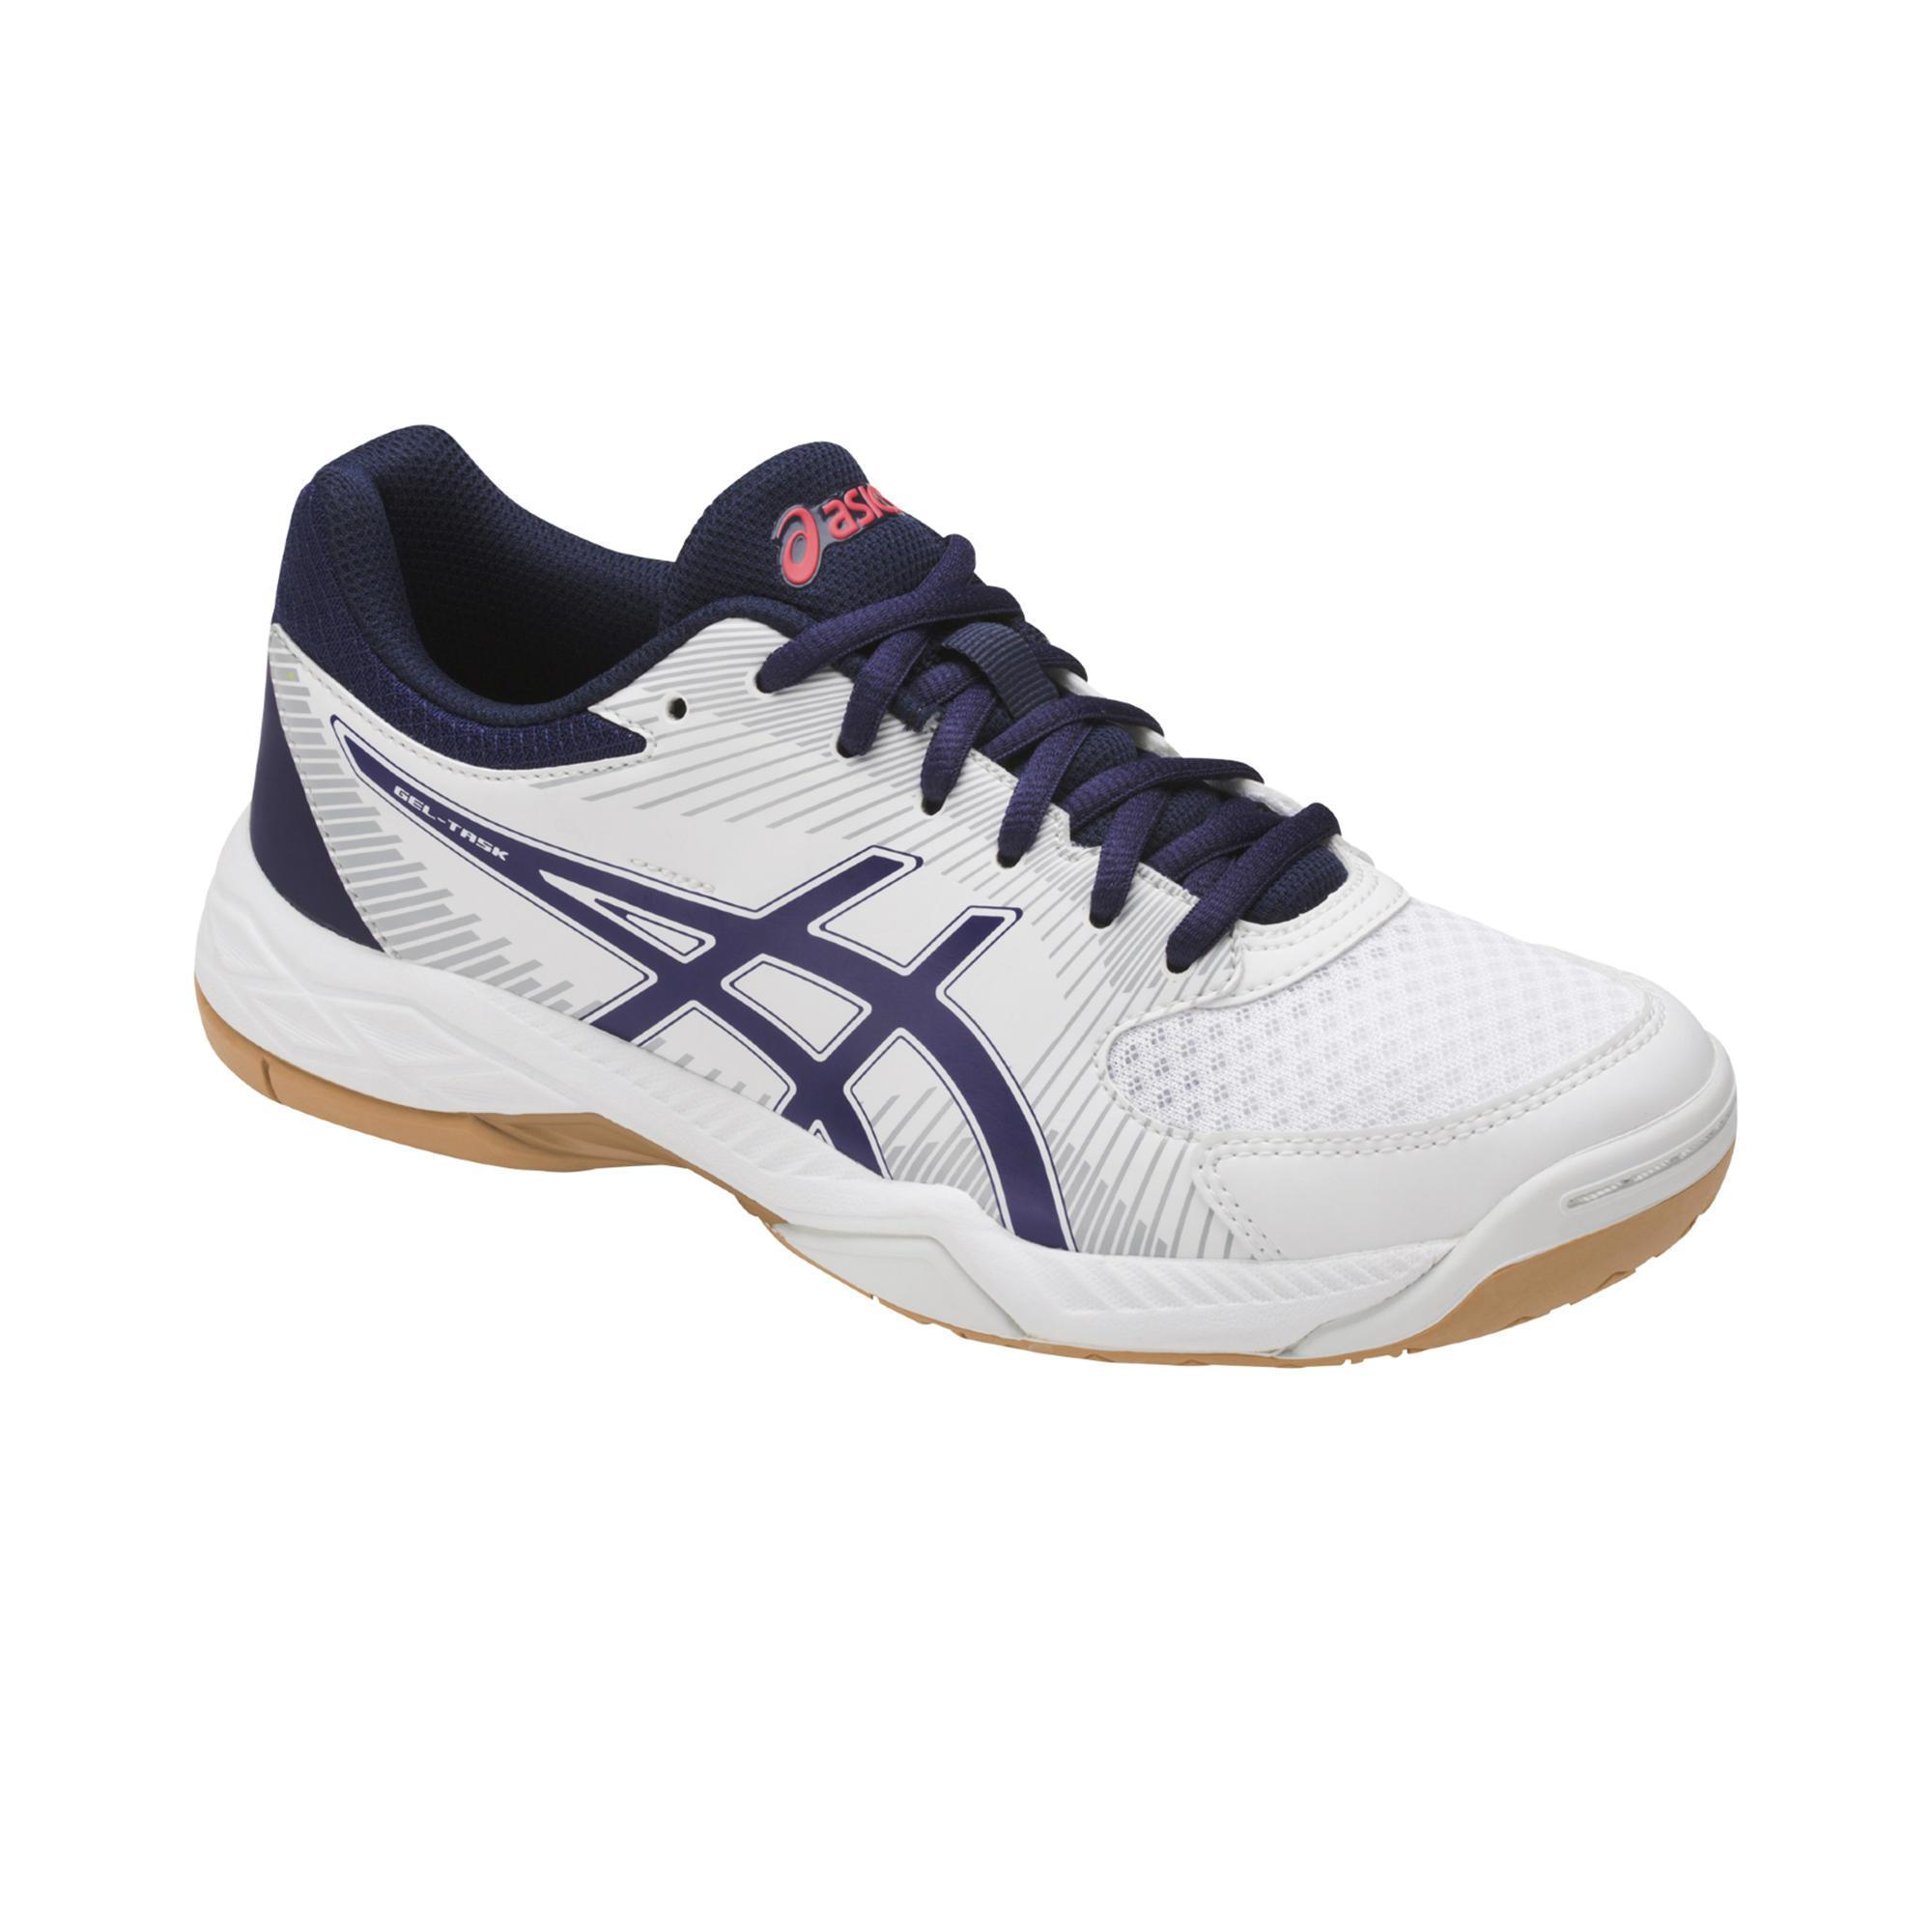 mizuno mens running shoes size 9 years old king whisky mercadolibre